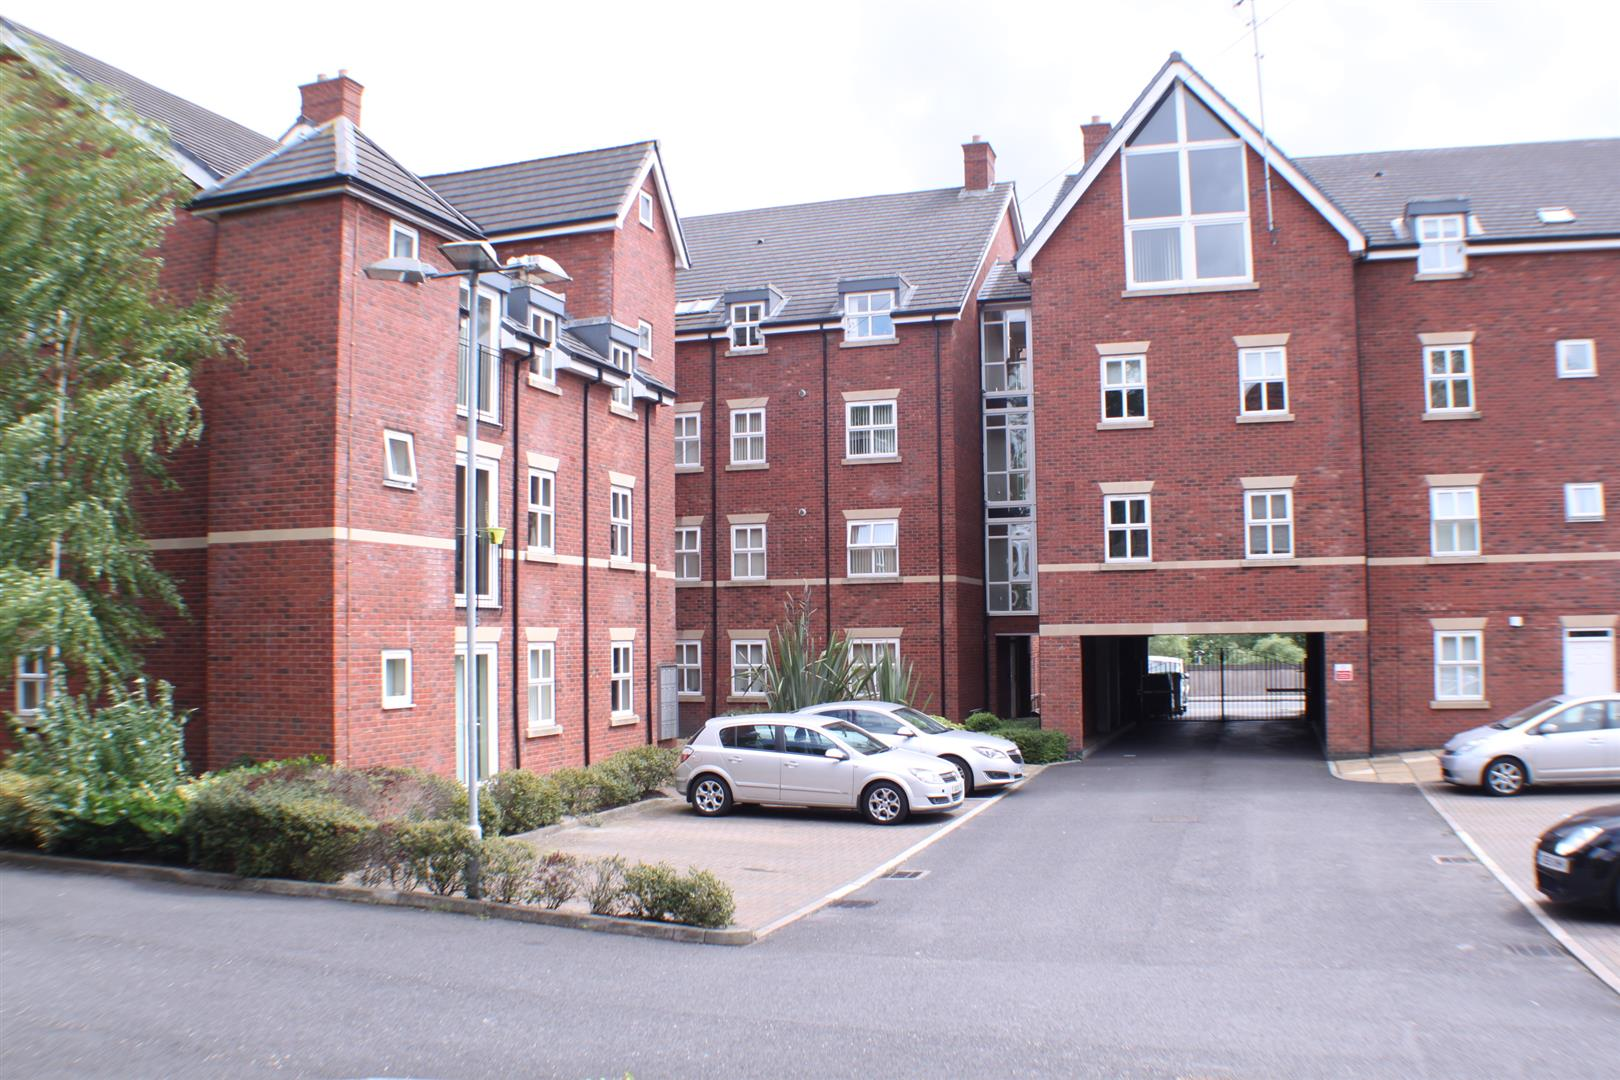 2 Bedrooms Flat for sale in Wellington Road, Eccles, Manchester